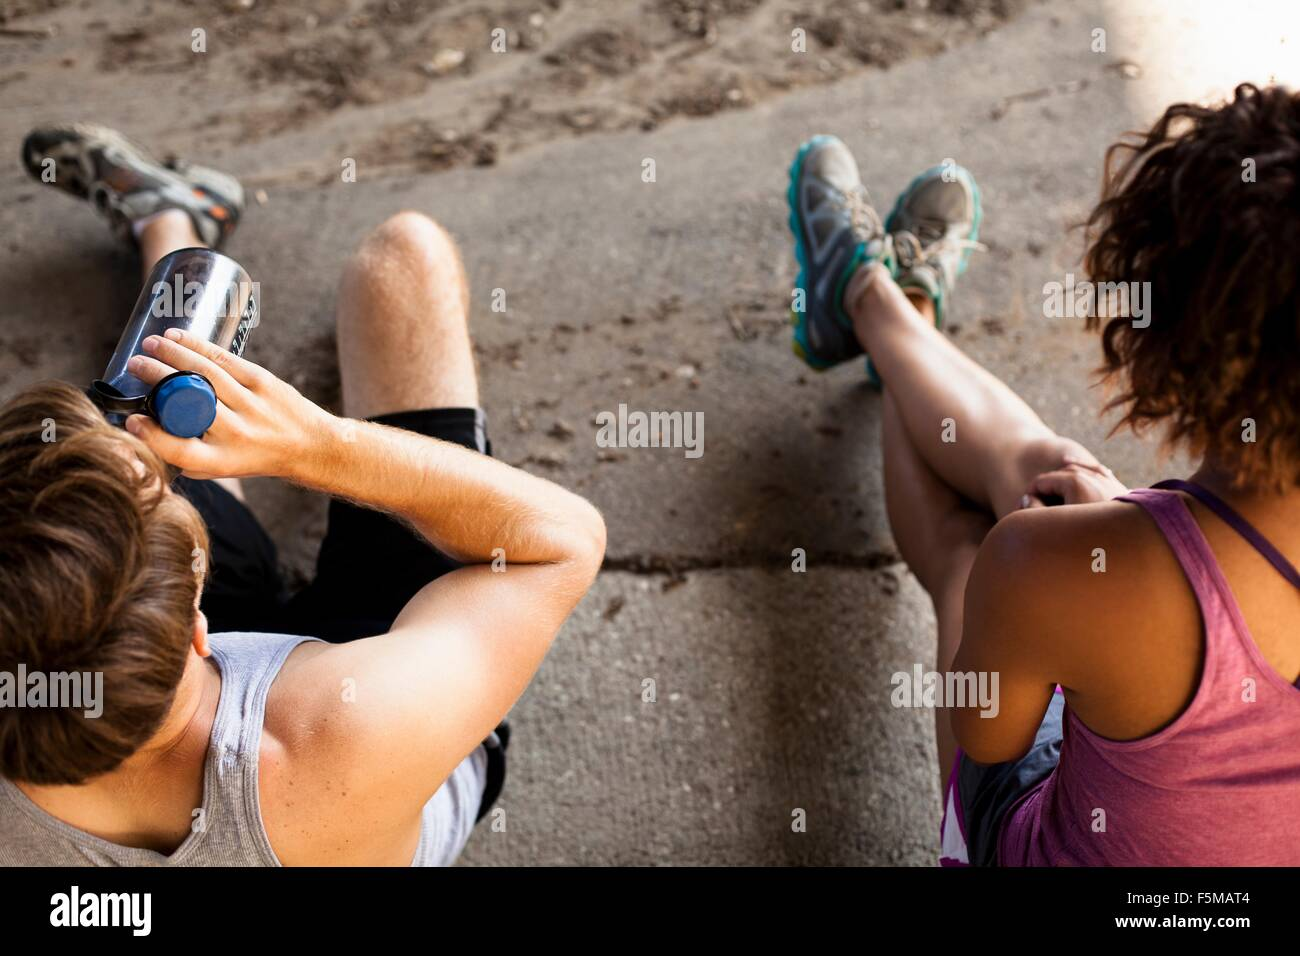 Overhead view of joggers taking break on kerb - Stock Image